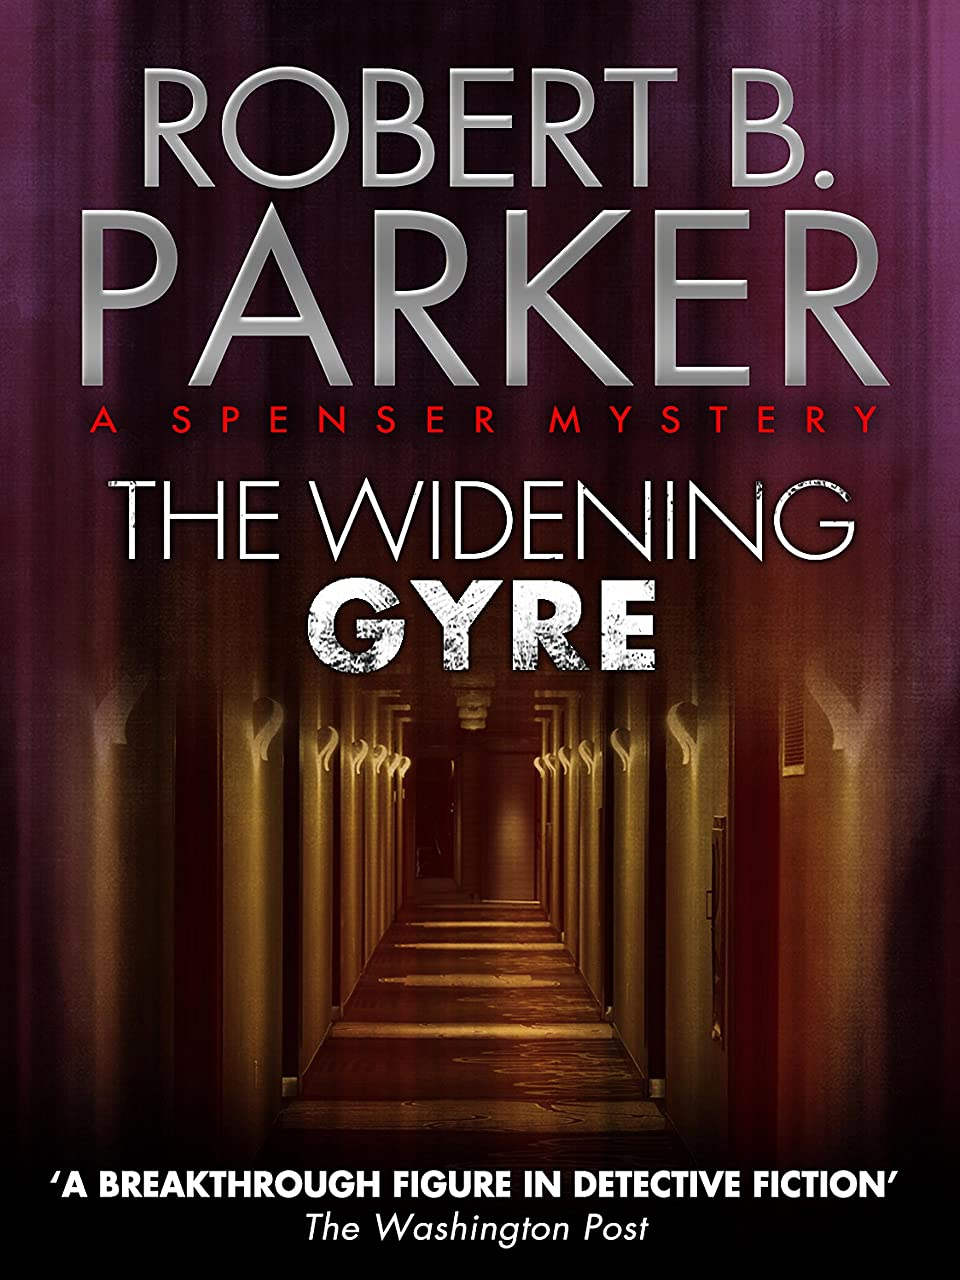 撃退する再生暗殺者The Widening Gyre (A Spenser Mystery) (The Spenser Series Book 10) (English Edition)